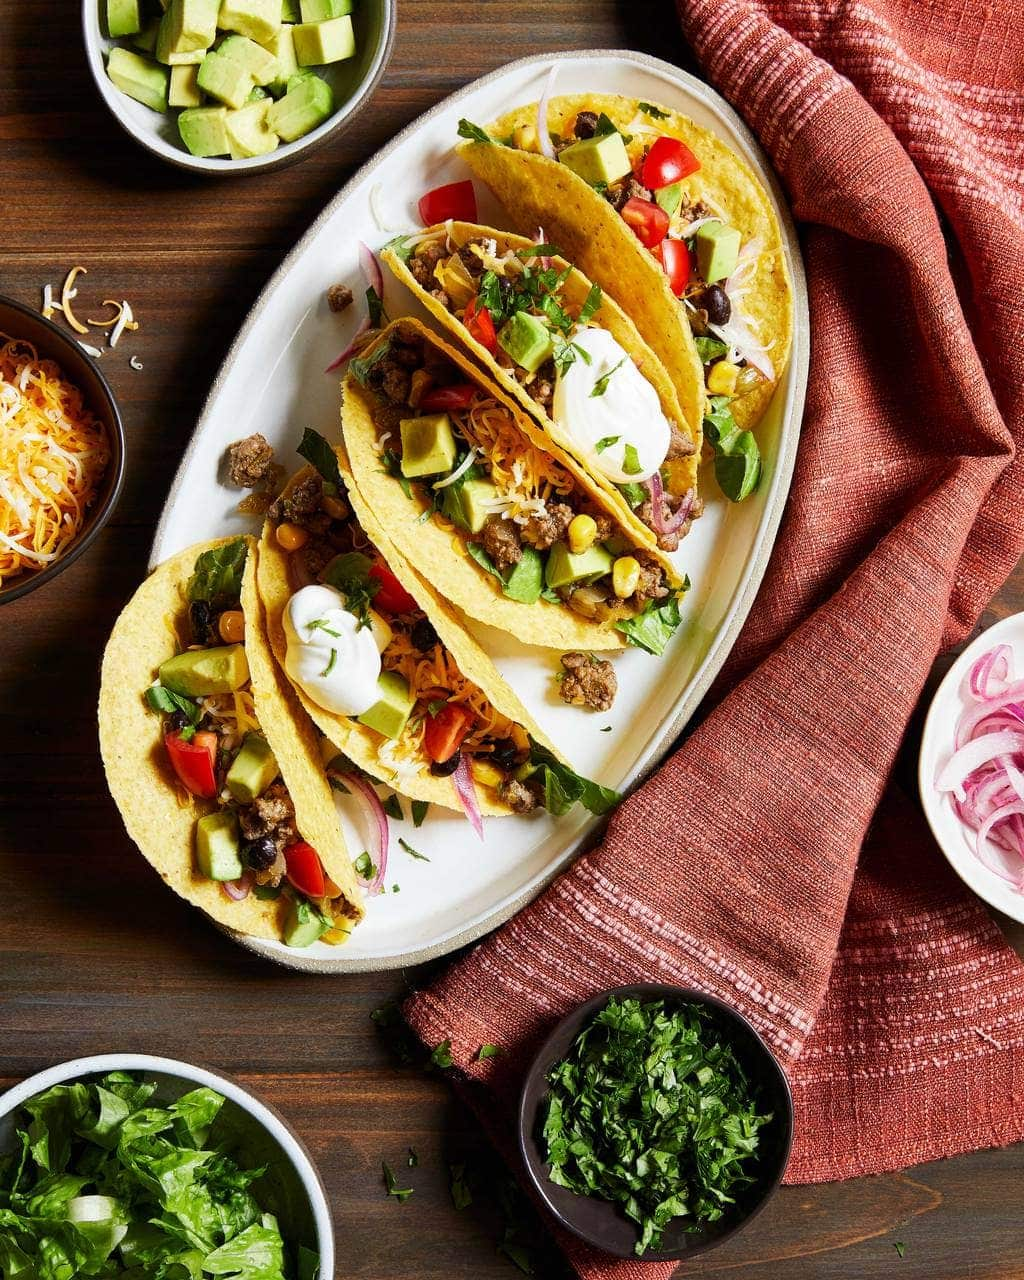 Chili Beef Tacos with Sour Cream